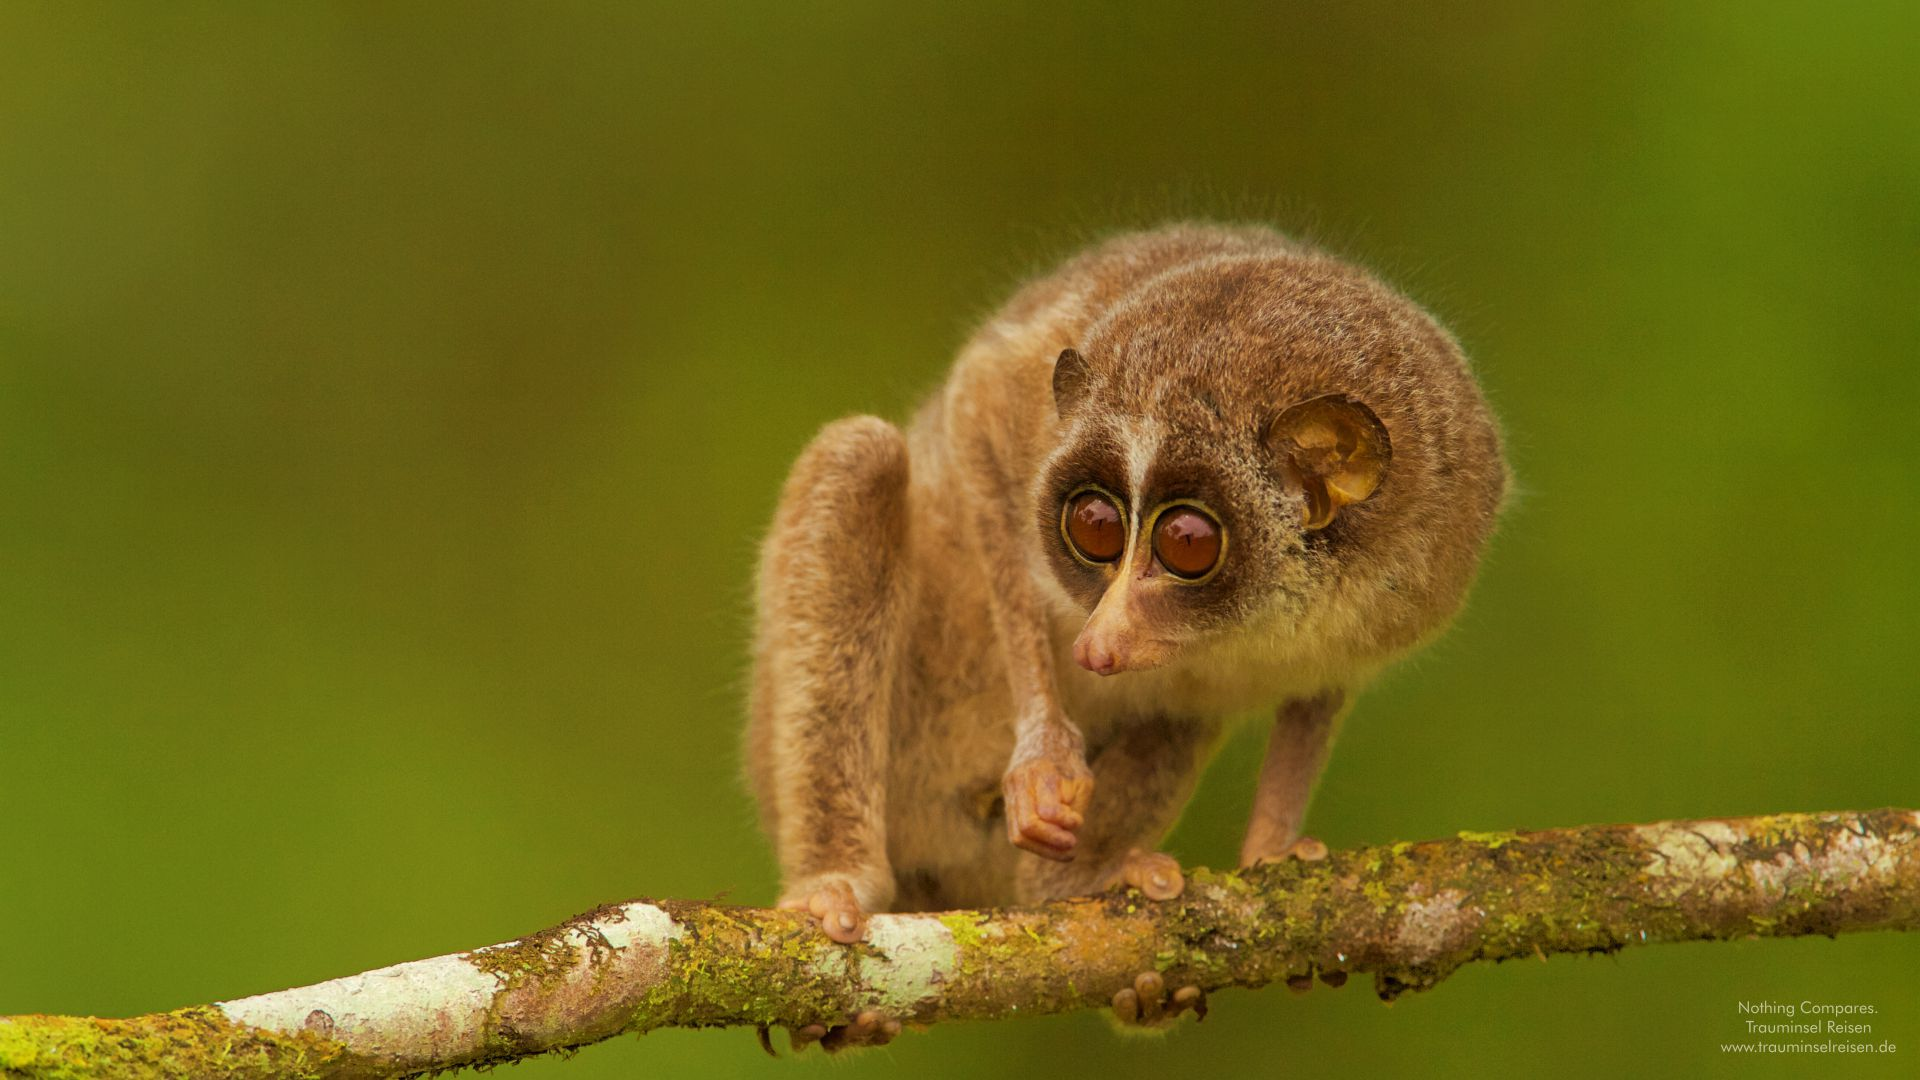 Slender Loris Sri Lanka Trauminsel Reisen Wallpaper 1920x1080